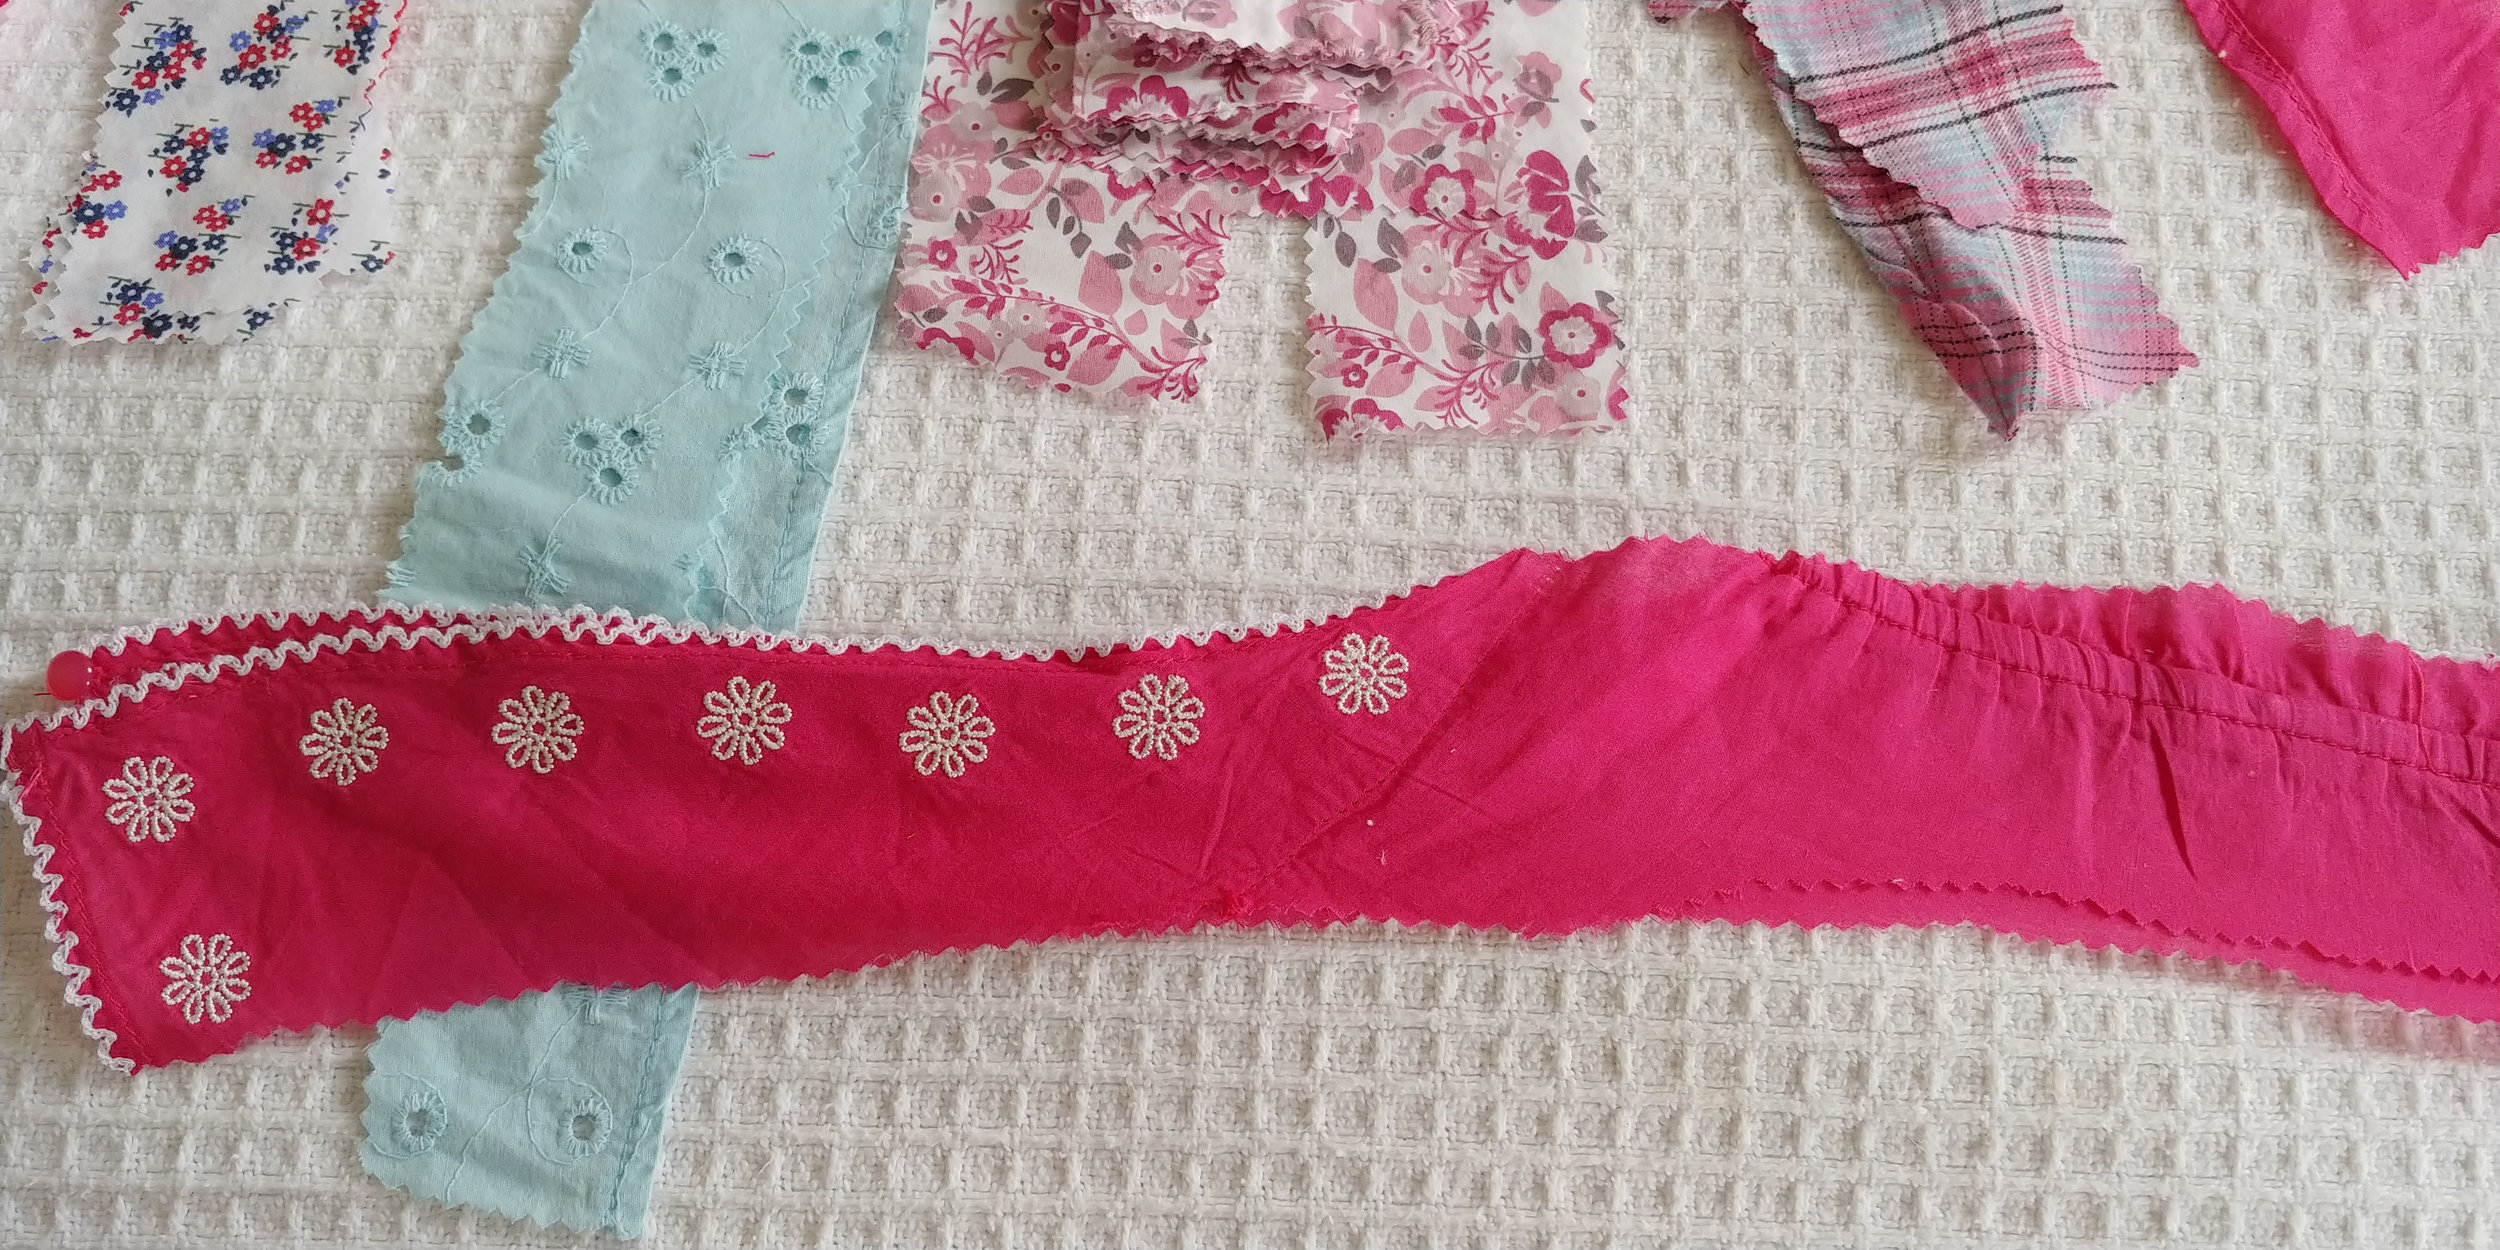 This pink strip came from a 2-3 year old top - the piece on the left is the sleeve, and the bit on the right is the back of the neck piece.